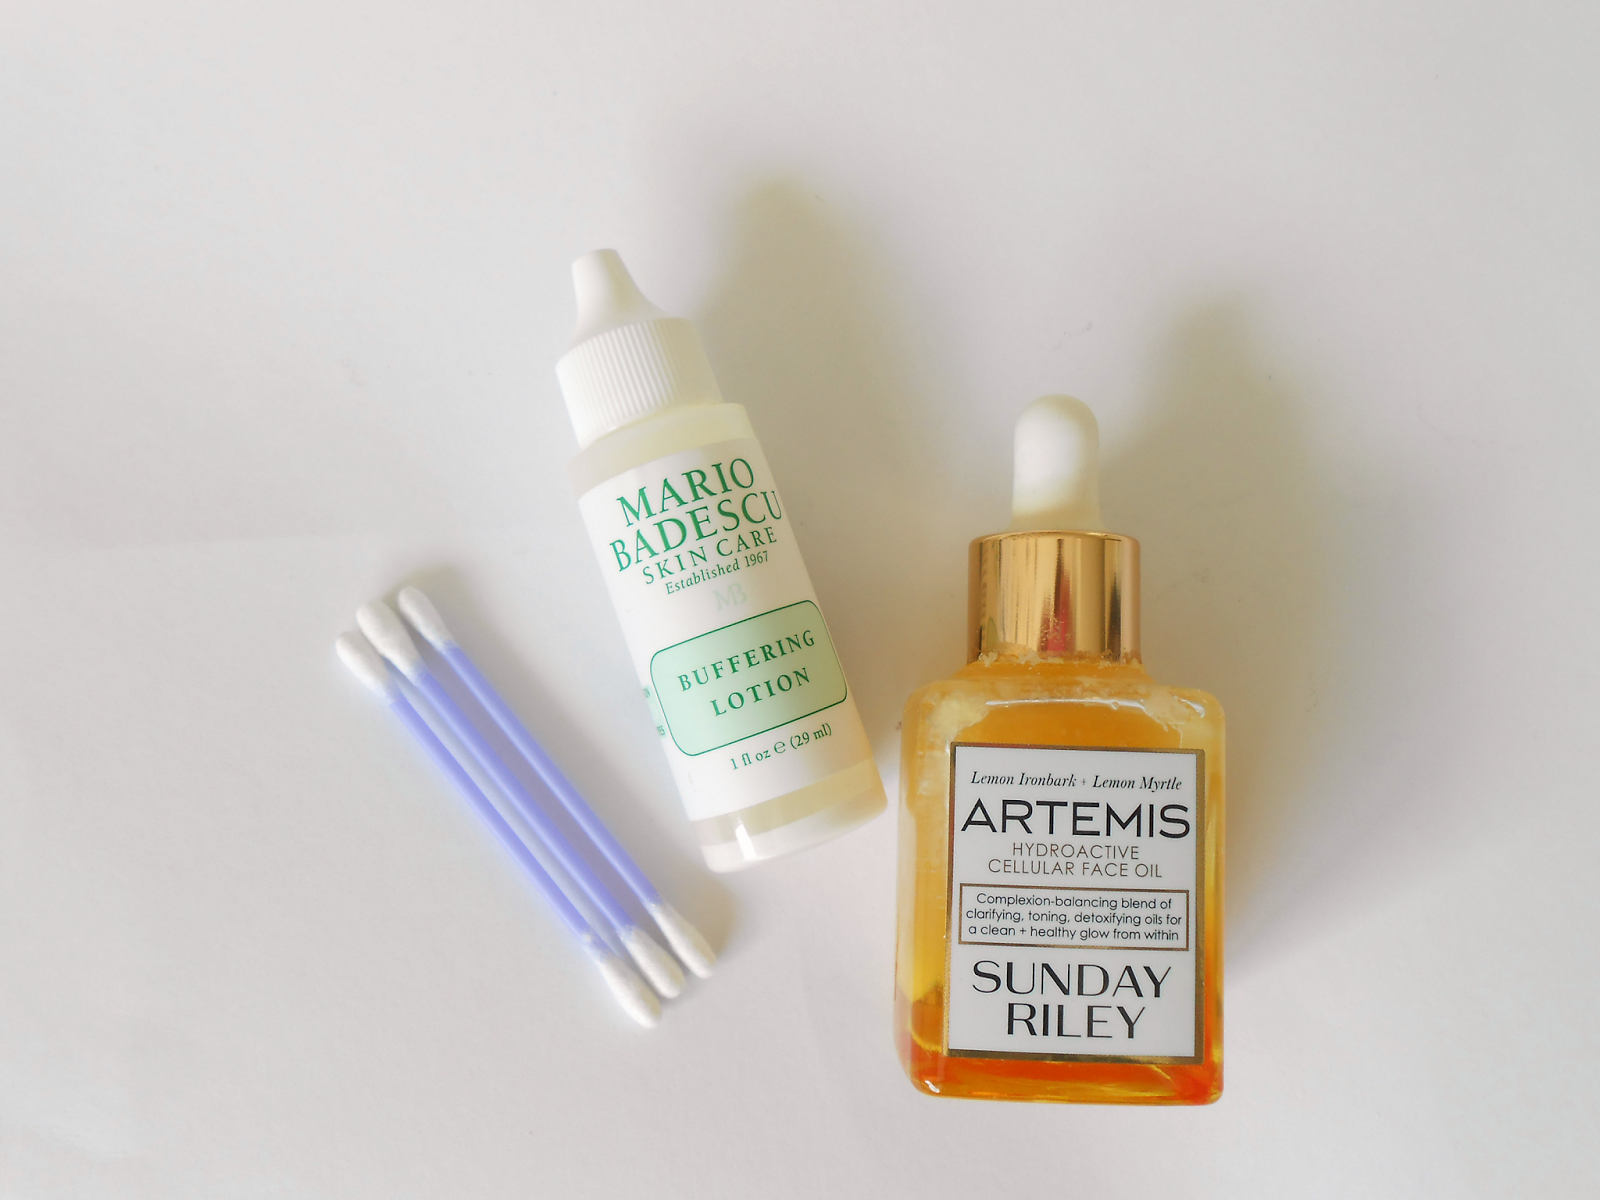 Anti Acne Products from Mario Badescu and Sunday Riley